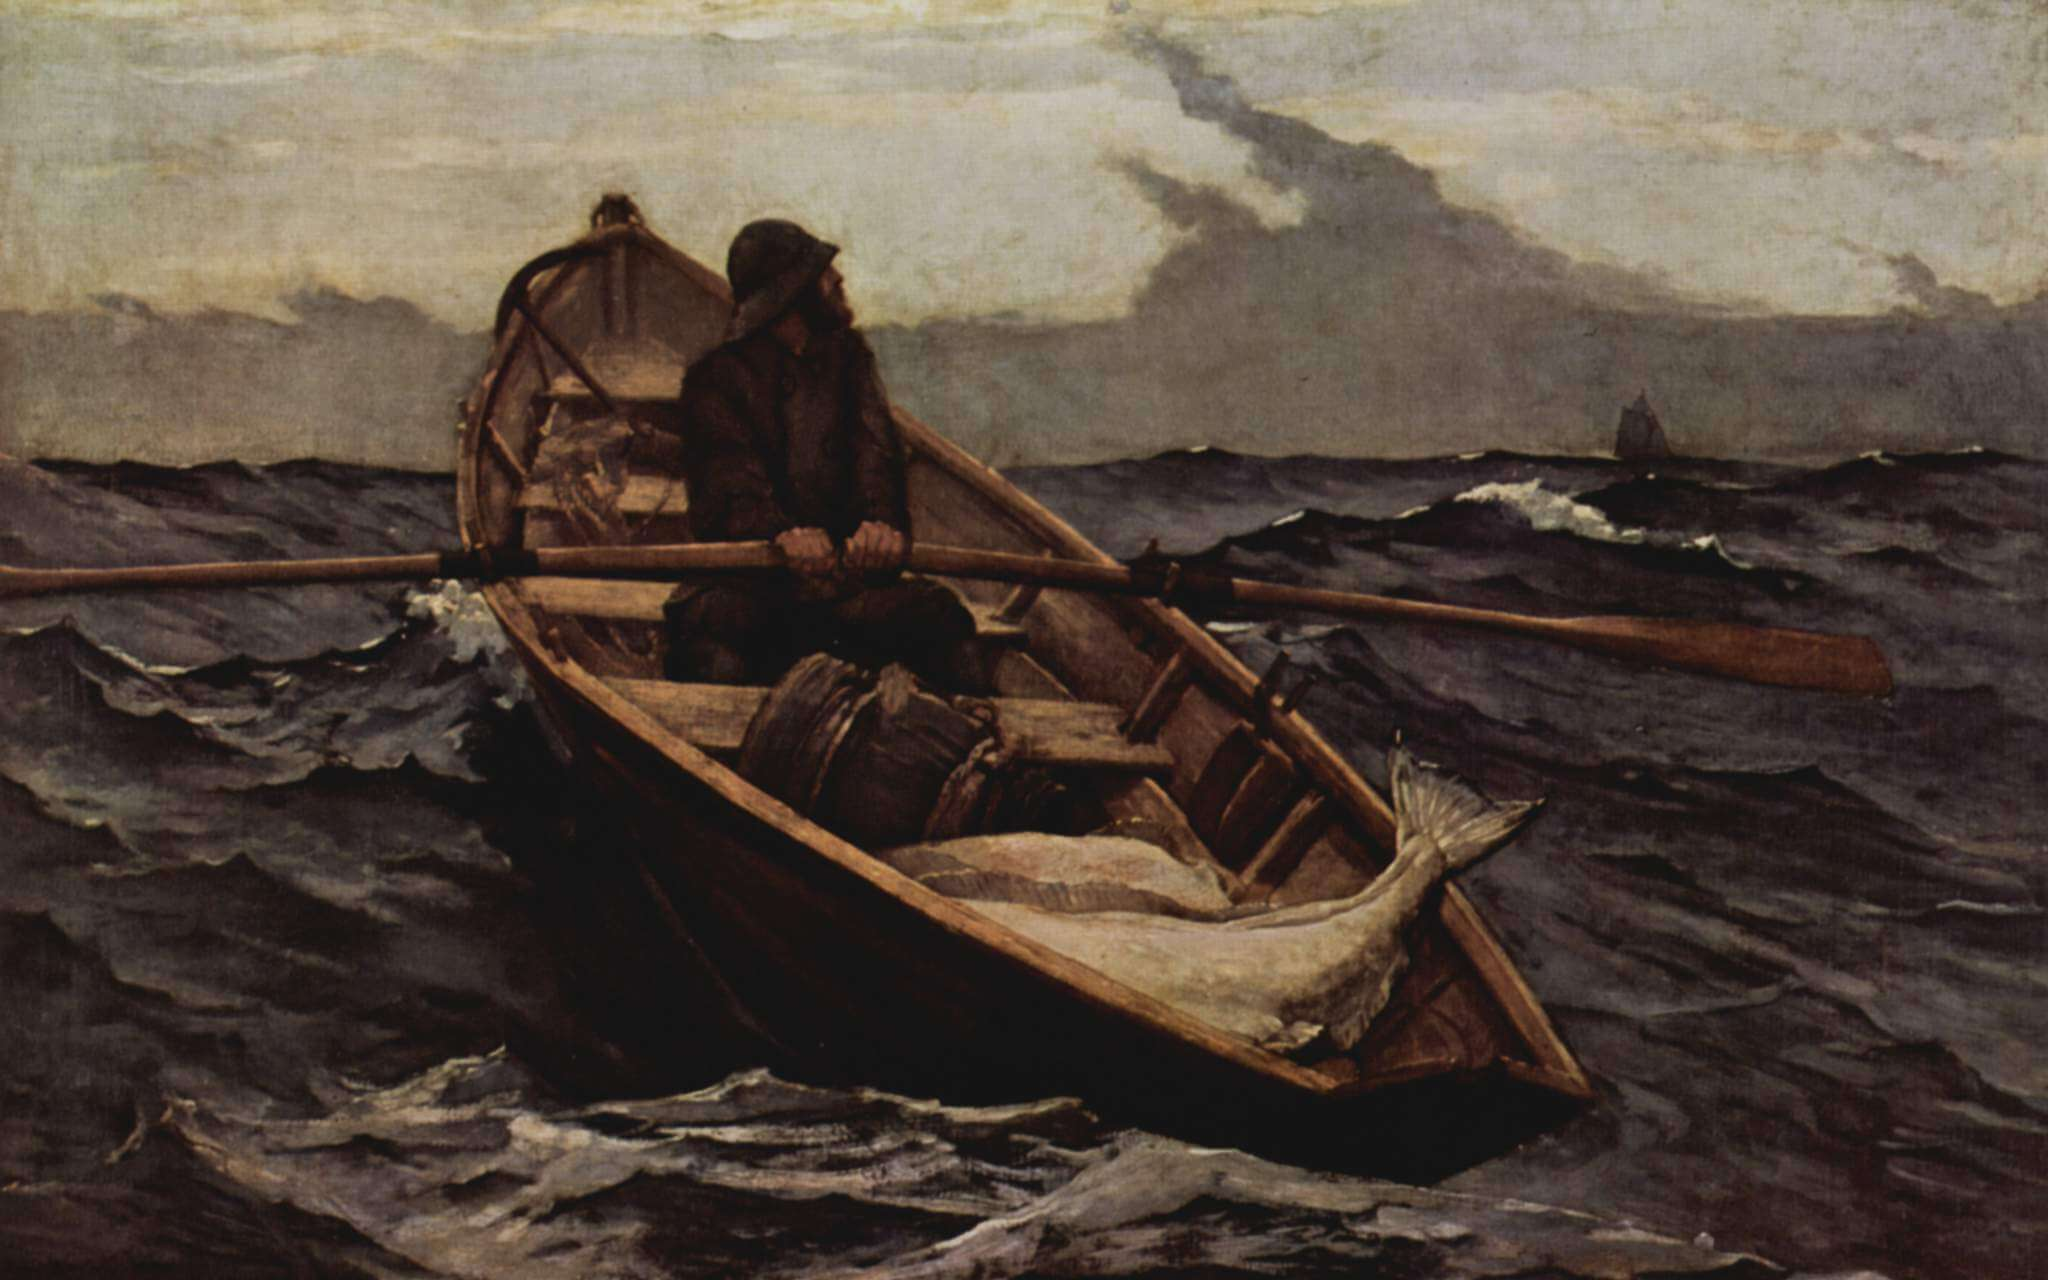 The Fog Warning, 1885 by Winslow Homer